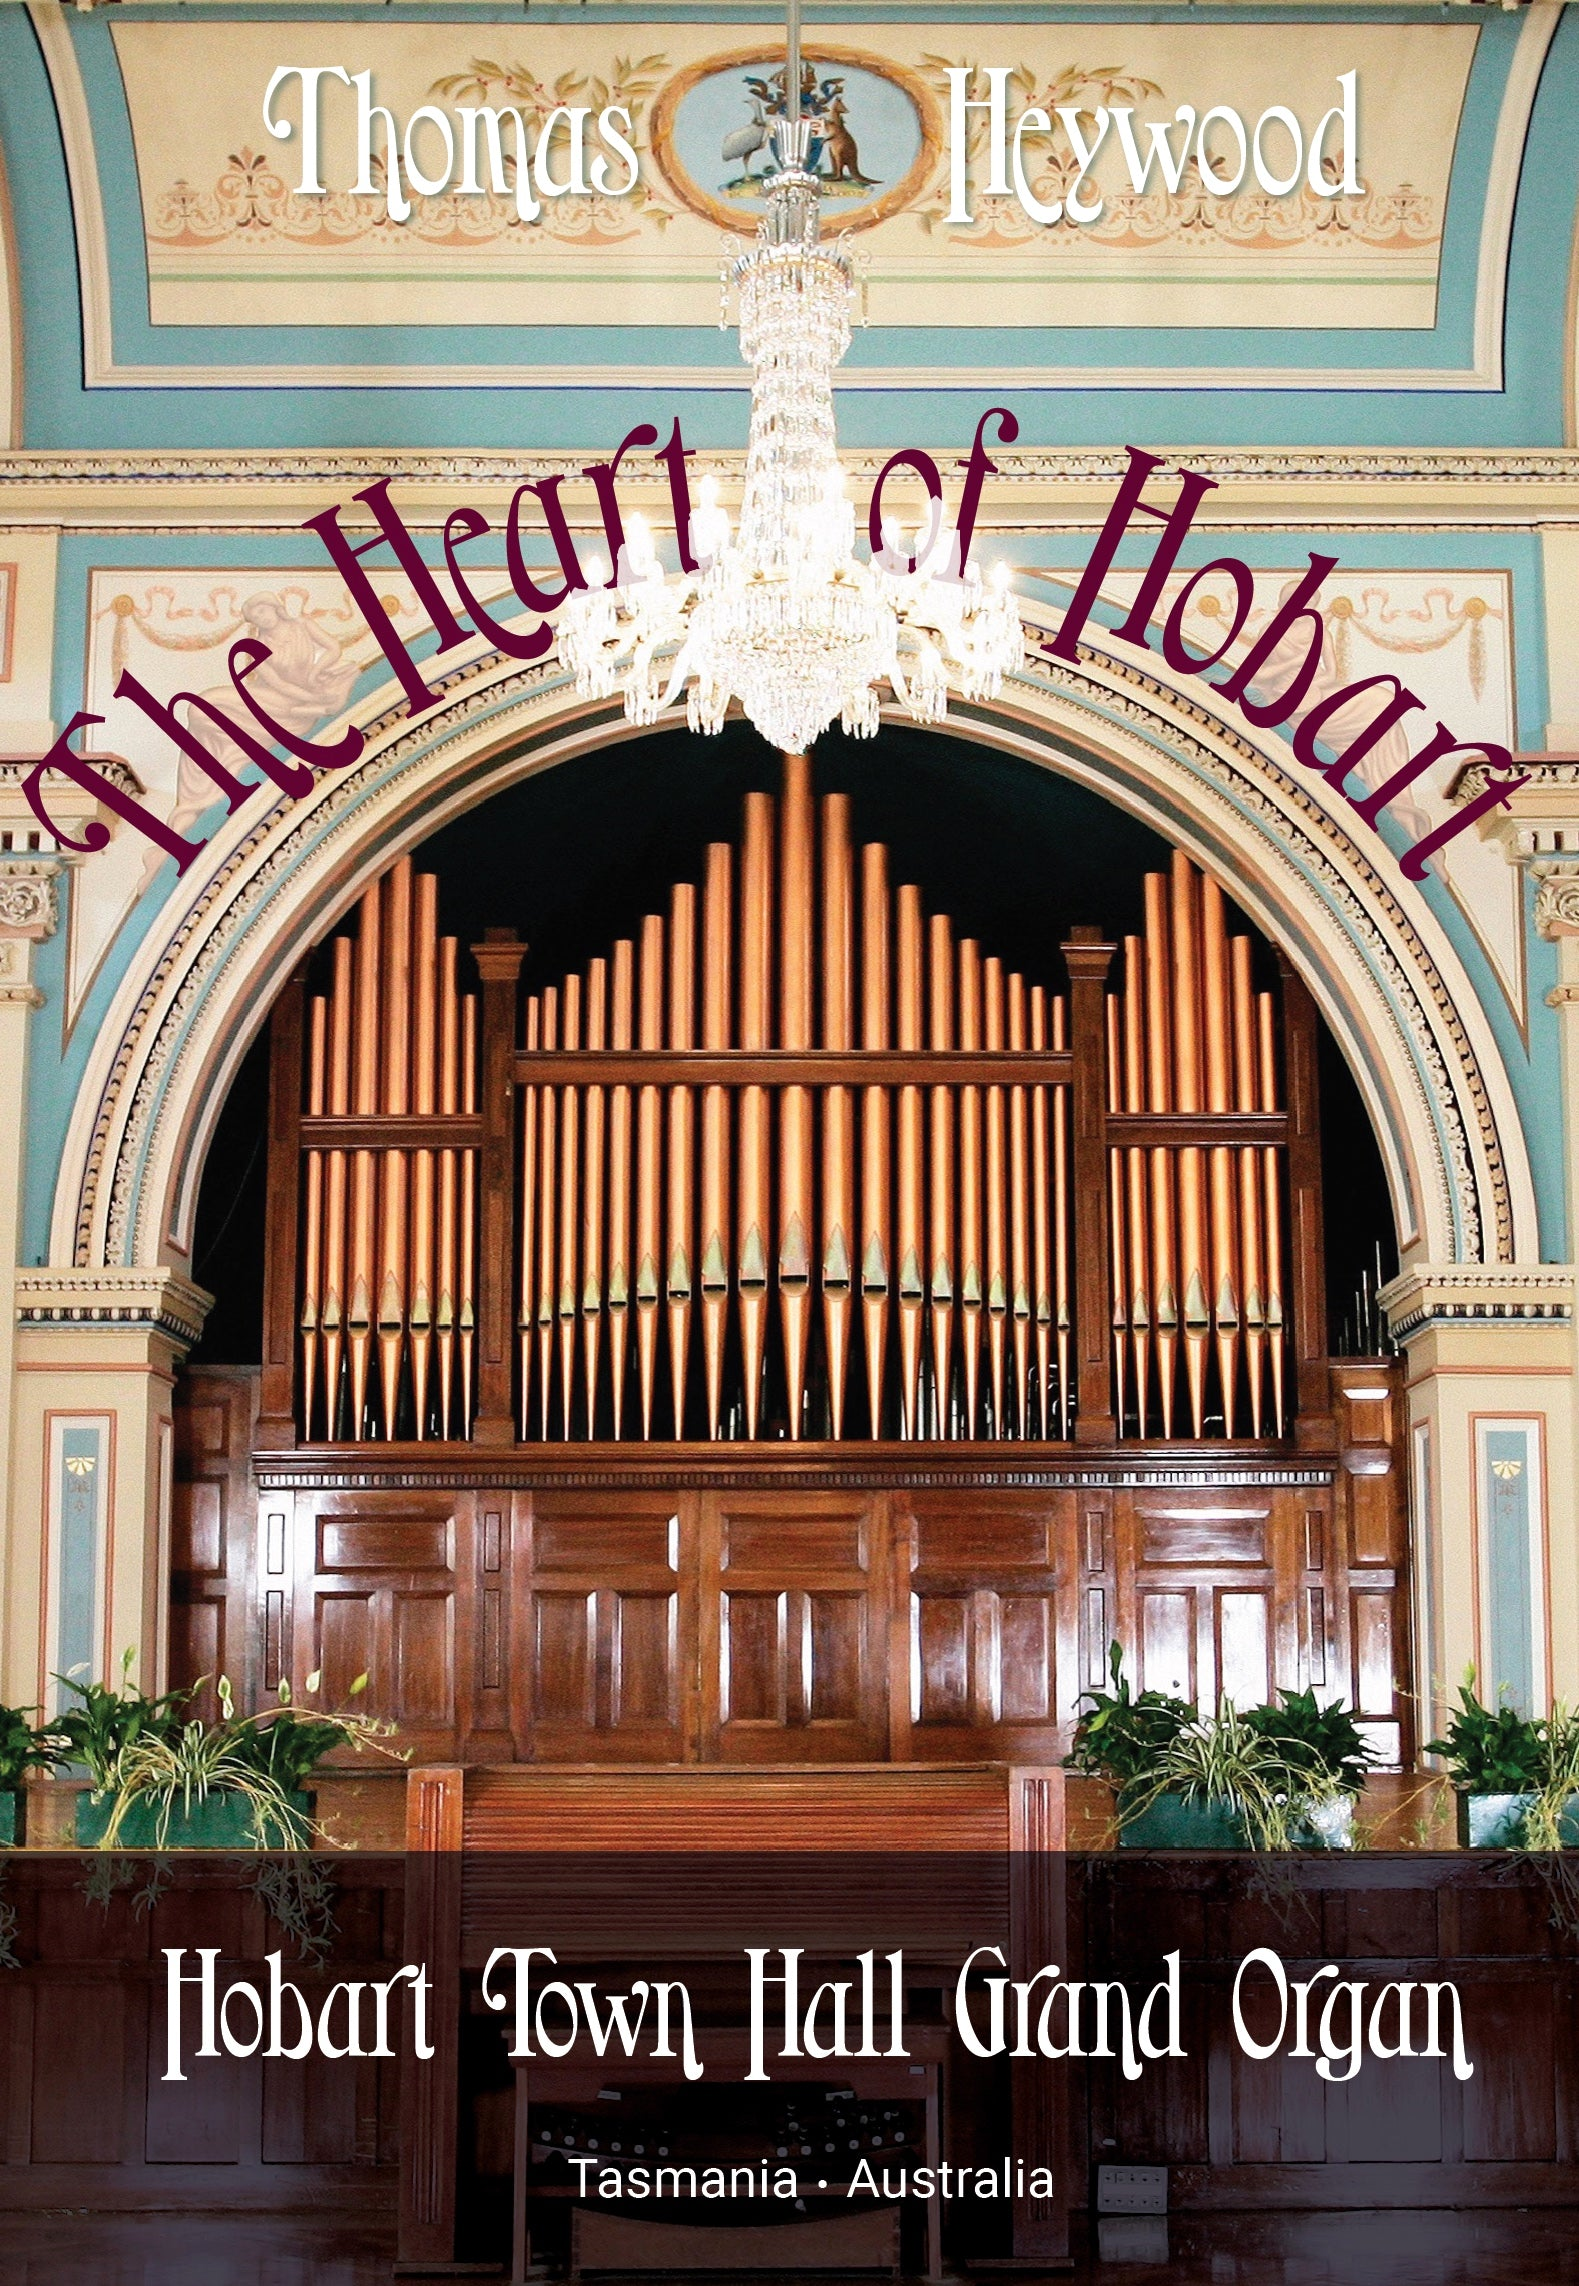 The Heart of Hobart (DVD) | Thomas Heywood | Concert Organ International